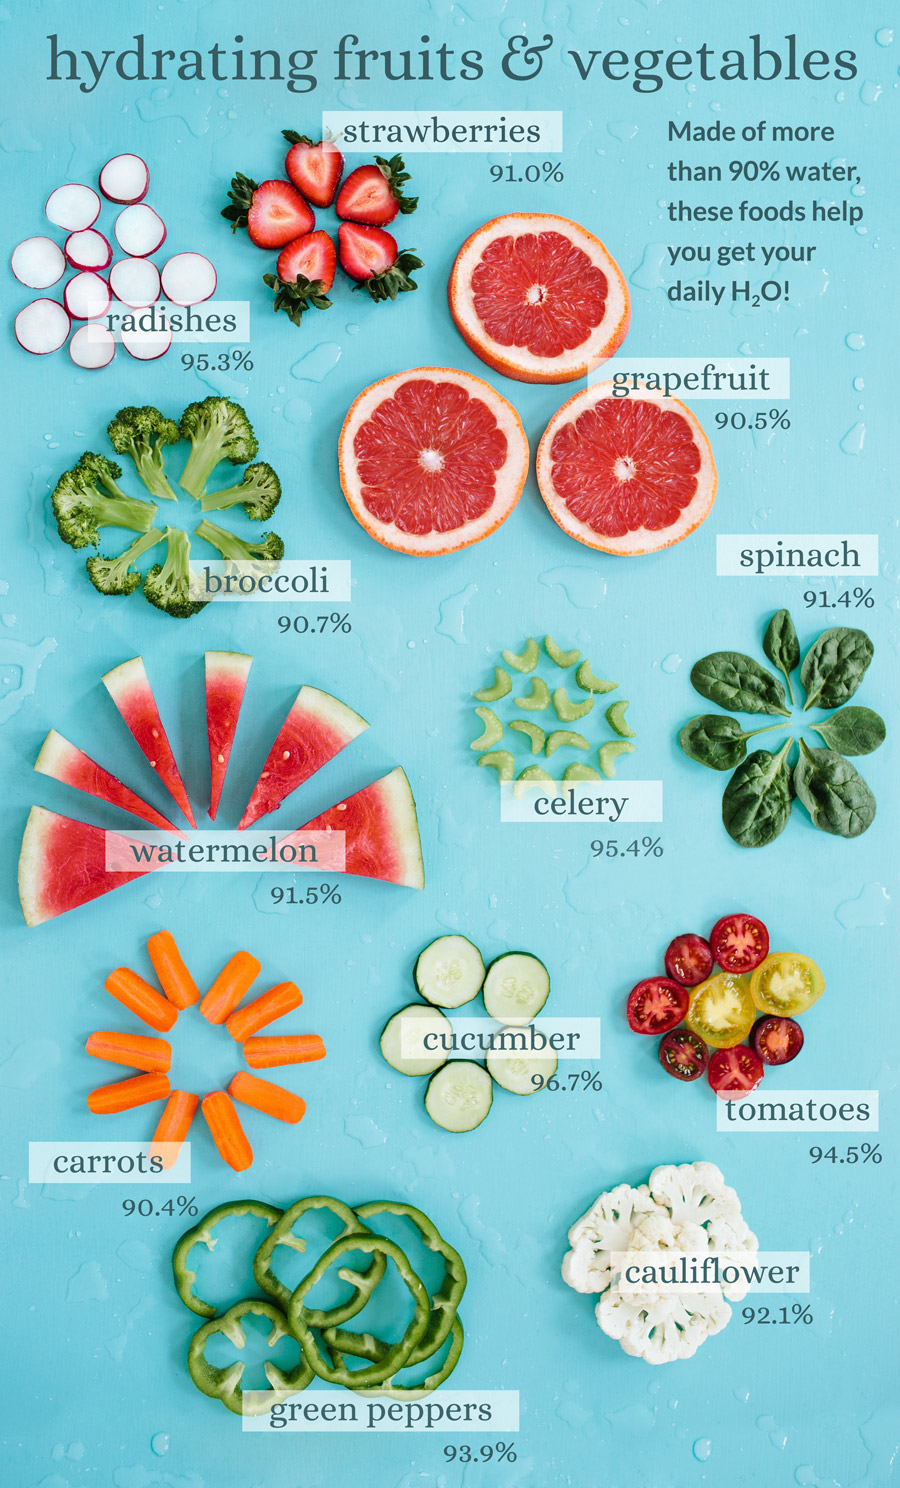 Hydrating Fruits and Vegetables